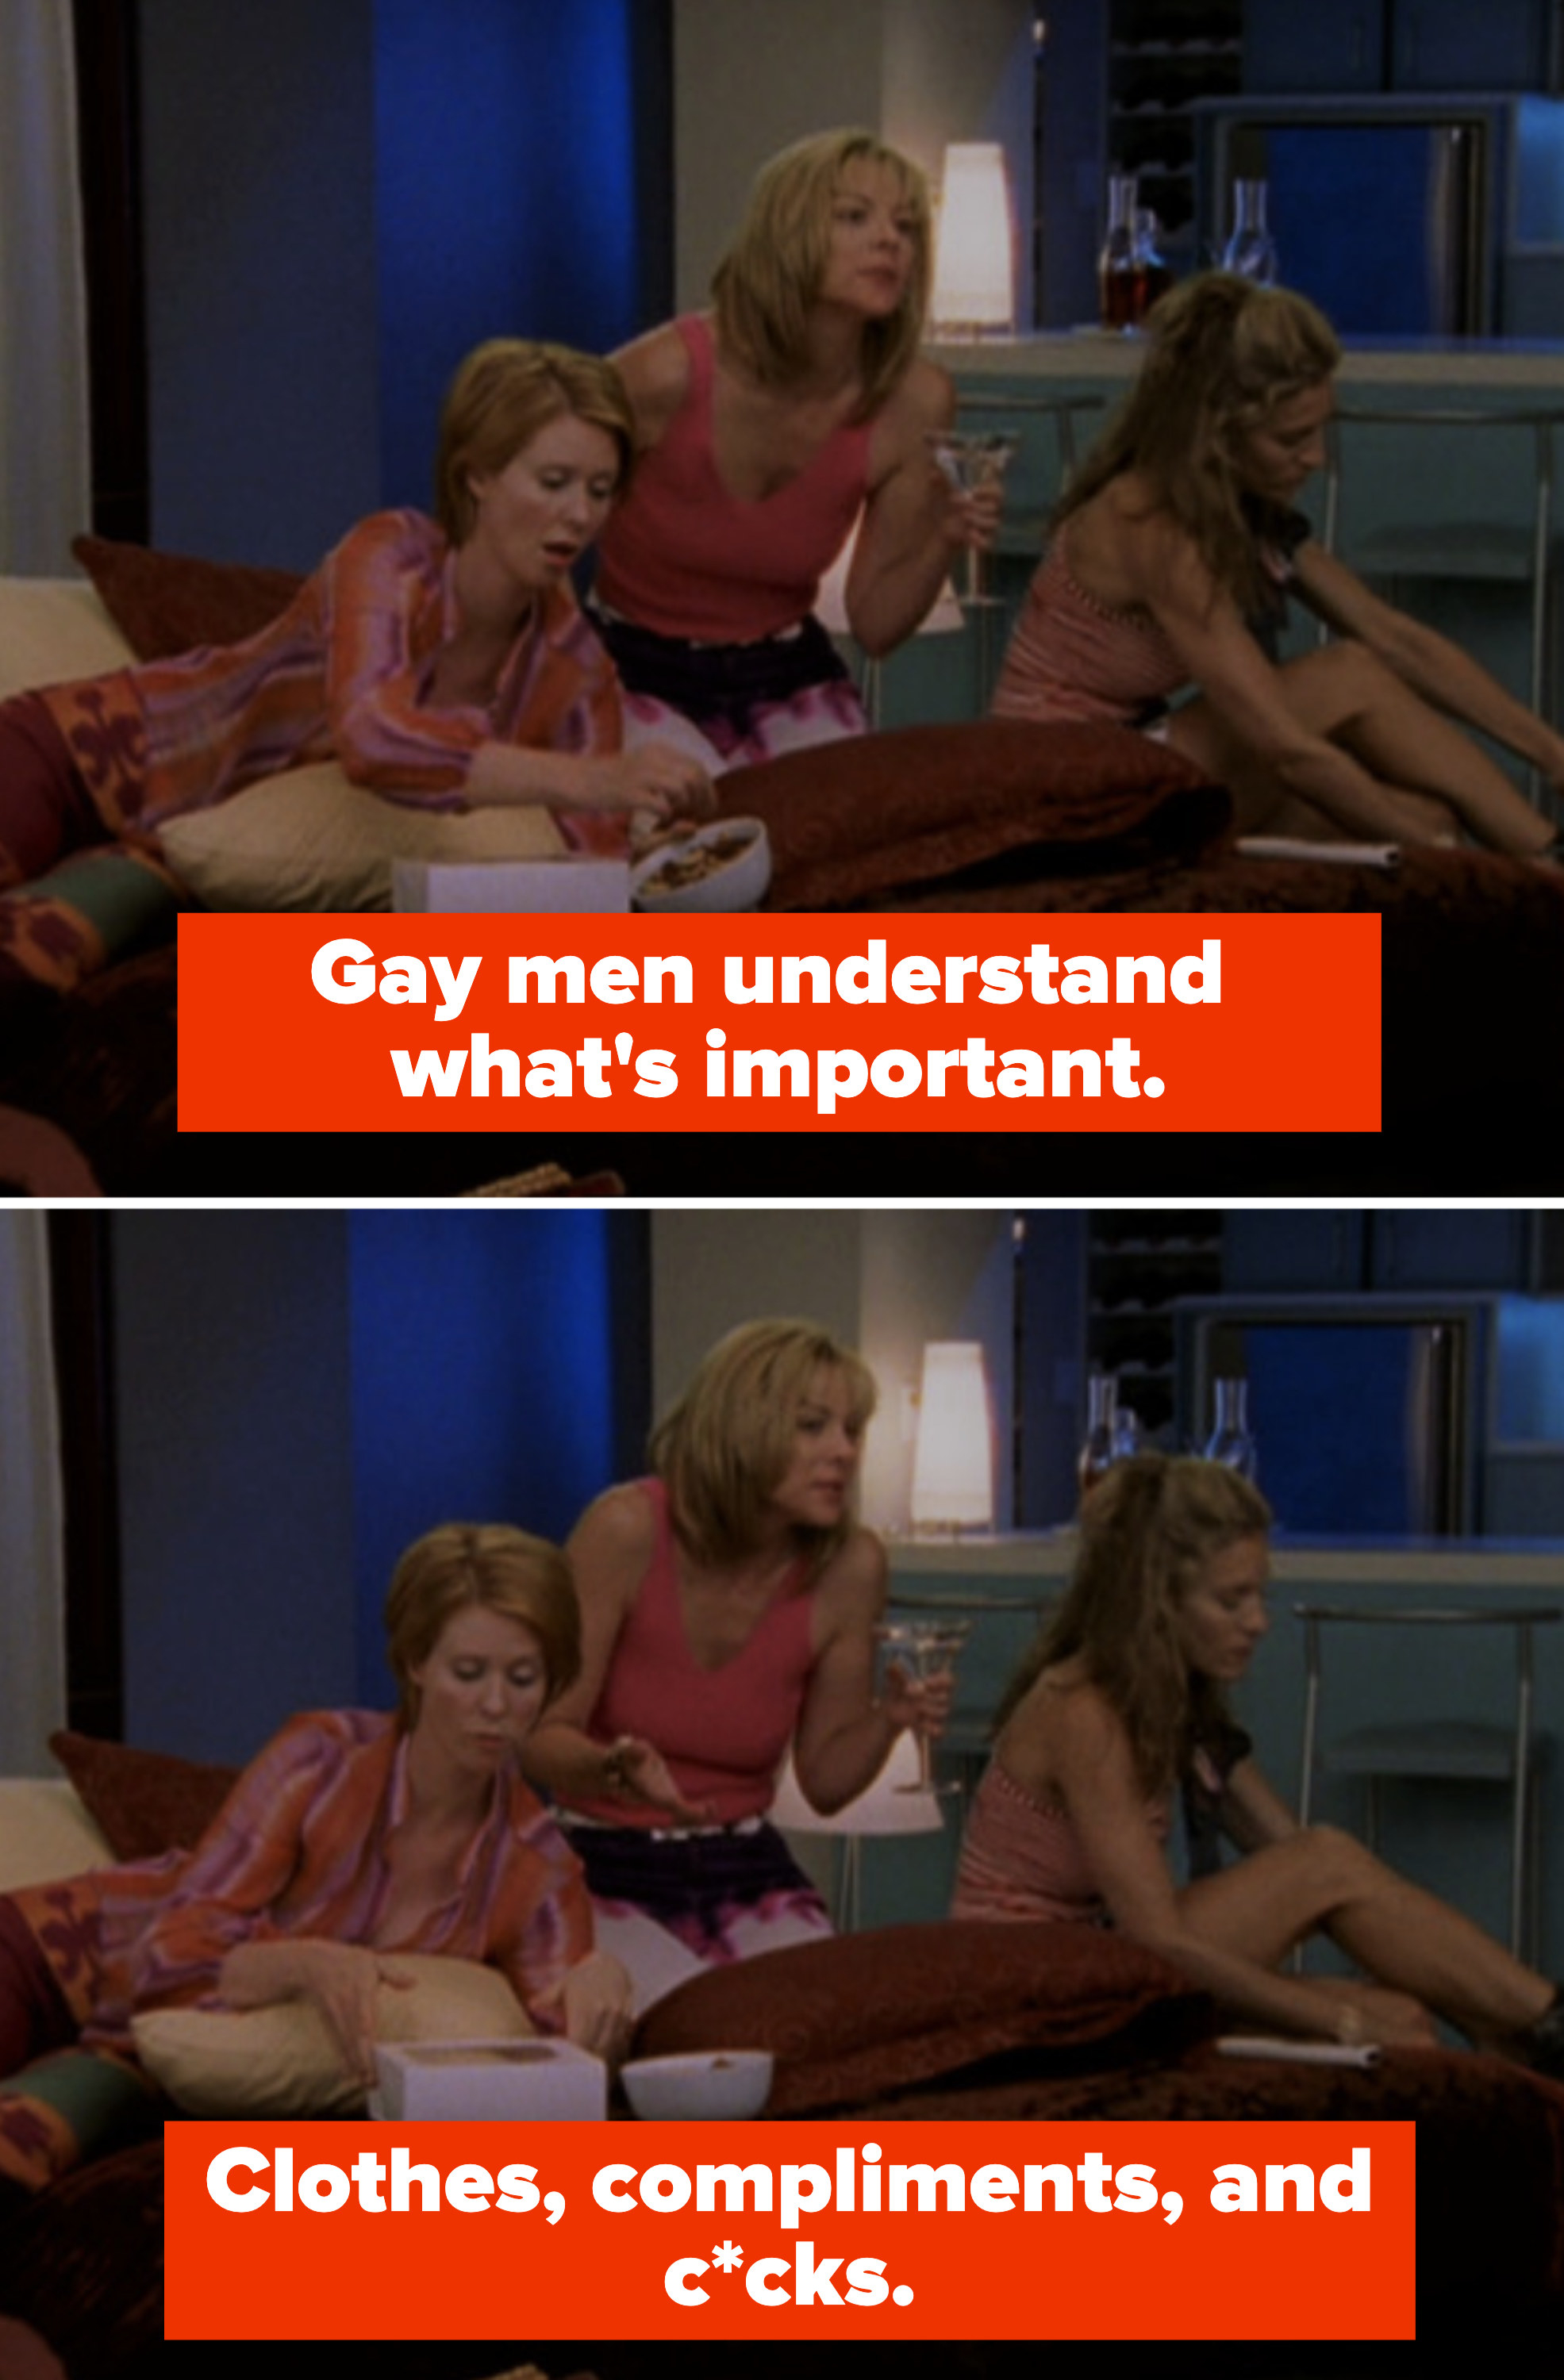 """Samantha in her apartment telling Carrie and Miranda: """"Gay men understand what's important. Clothes, compliments, and c*cks"""""""